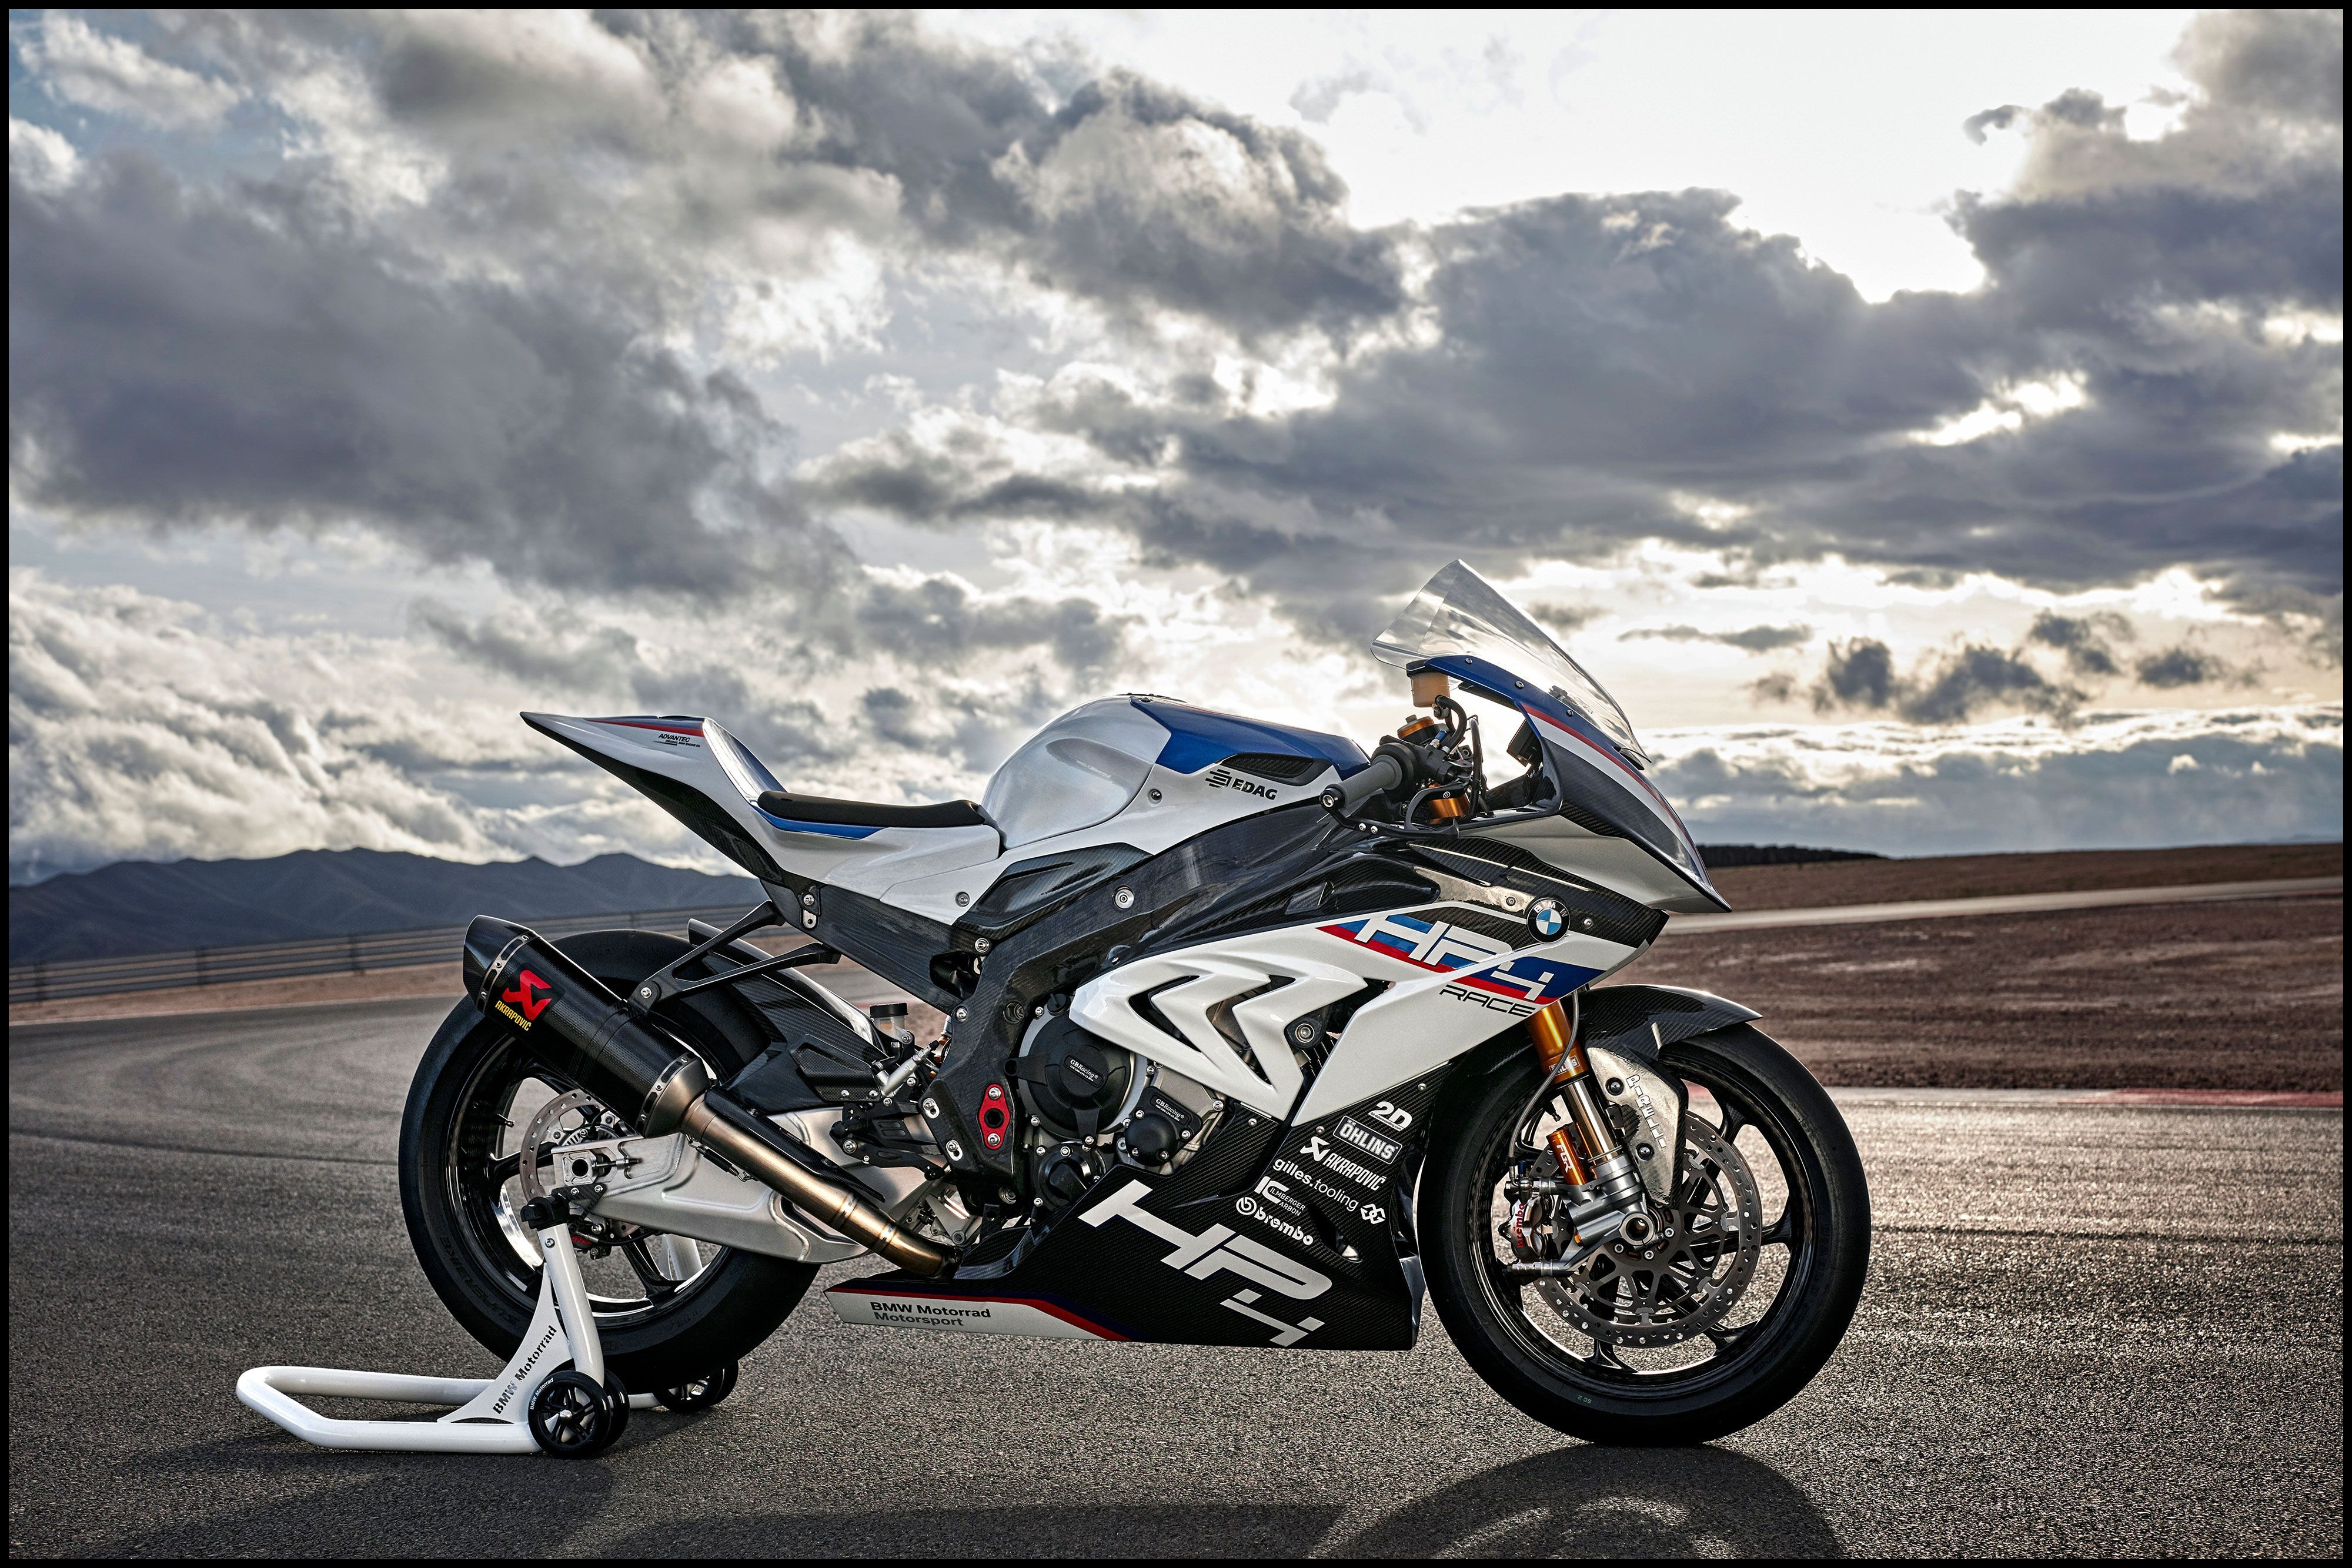 Bmw Hp4 2018 Overview and Price Bmw Hp4 2018 New Reviews 2018 Bmw Hp4 Race Bmwmotorrad